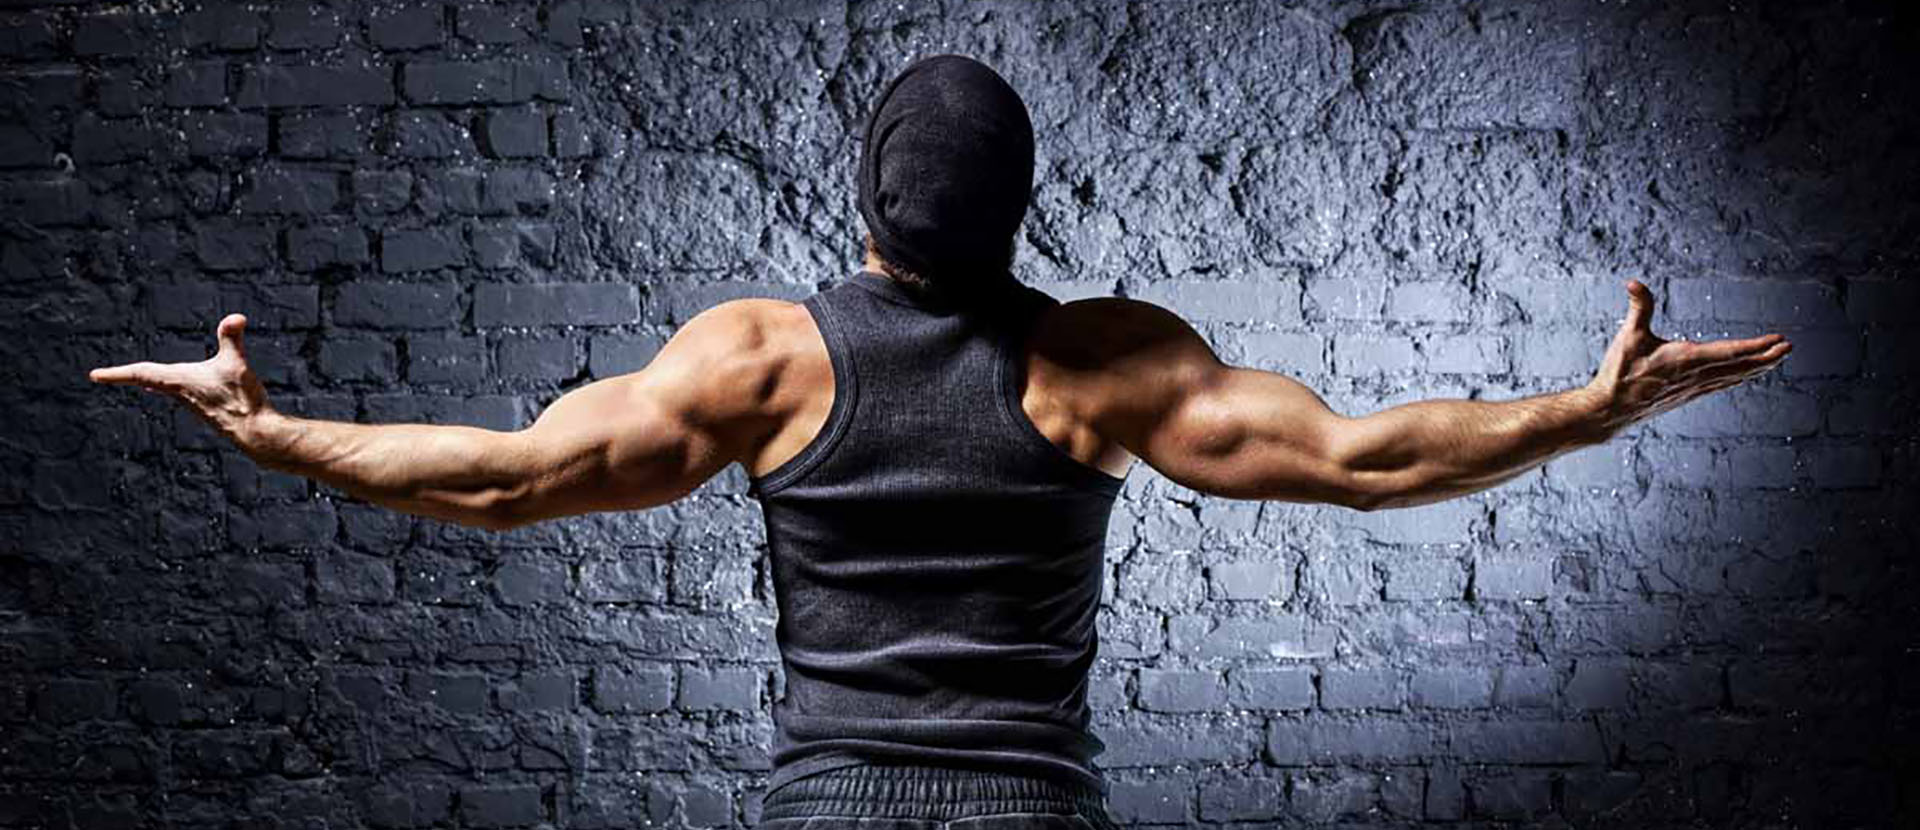 Buy Steroids Australia Steroids For Sale Australia